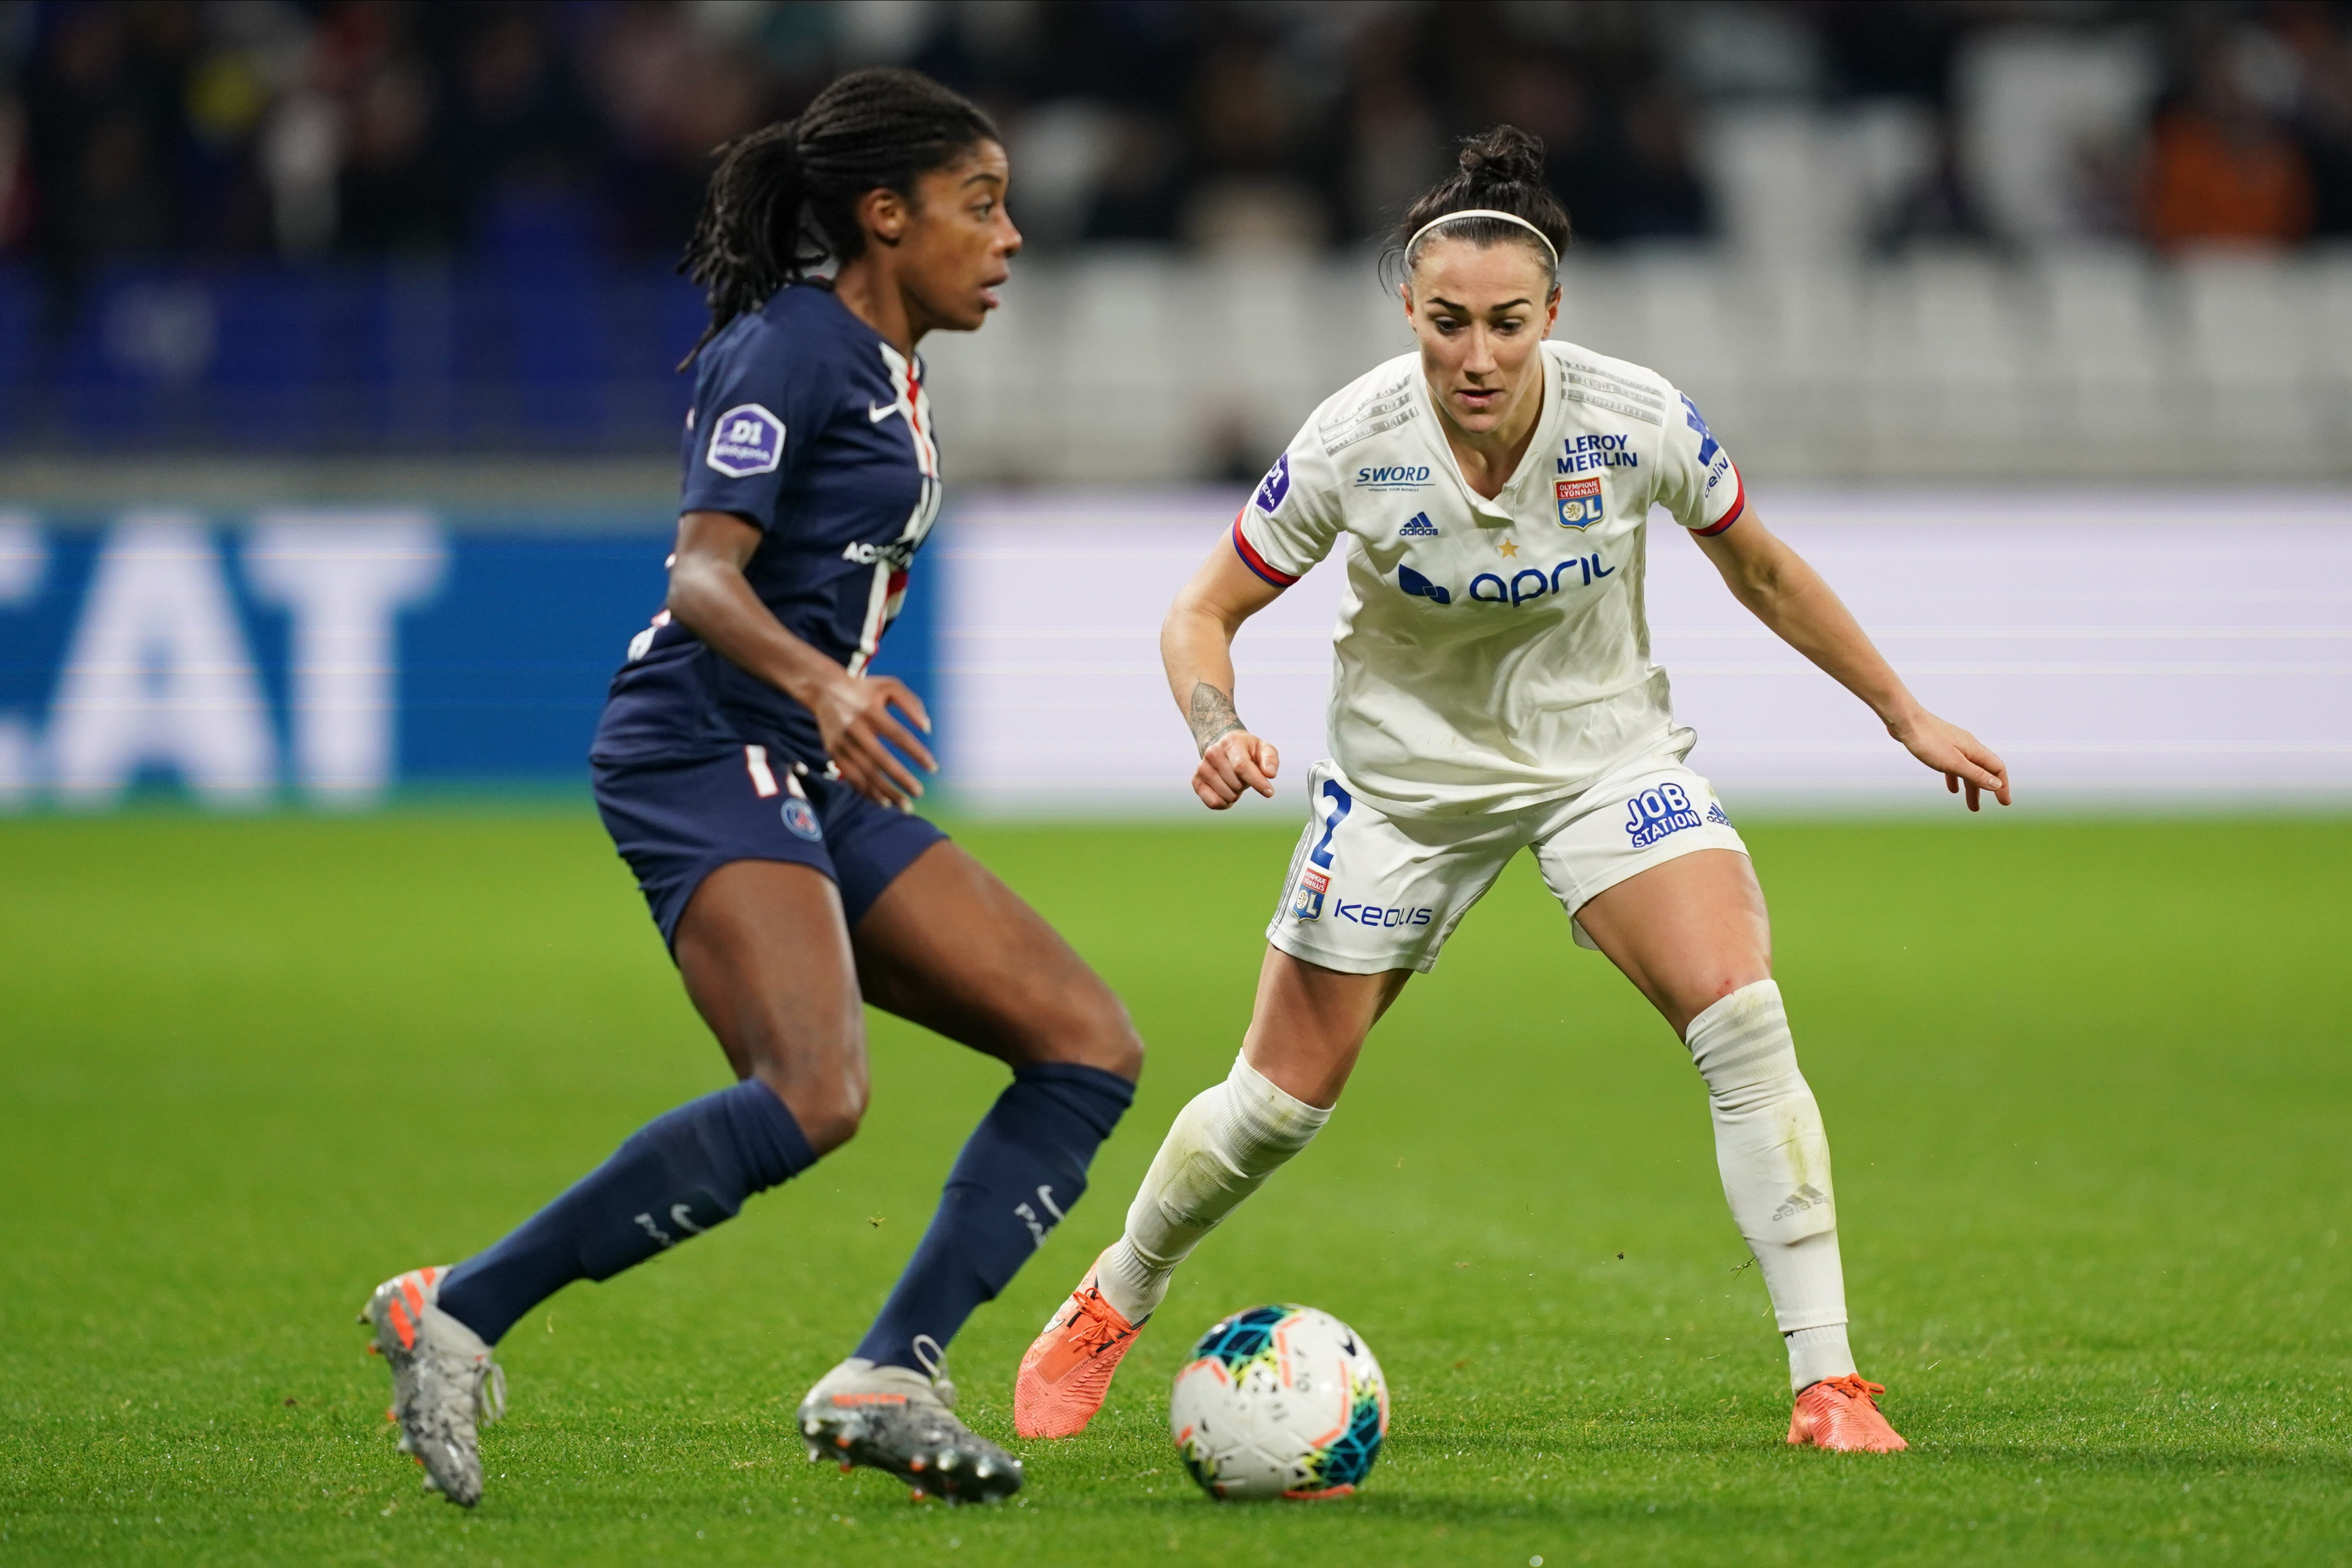 Lyon's Lucy Bronze says English clubs could learn from the way things are run at French league leaders